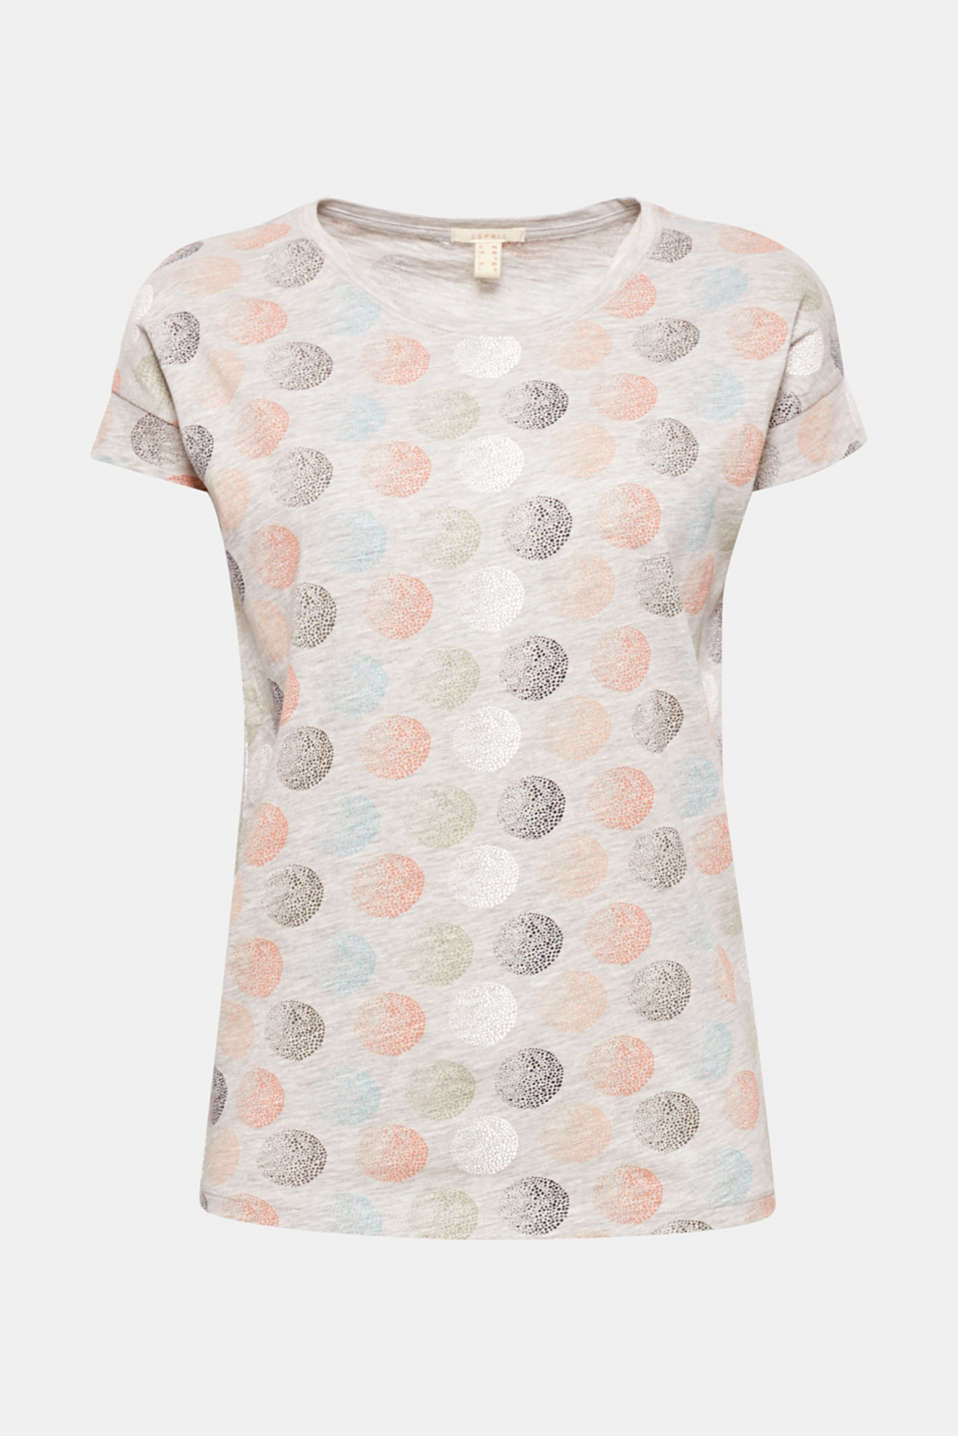 Bright polka dots in a graduated look adorn this melange slub T-shirt with a loose cut and fashionable sleeve solution!